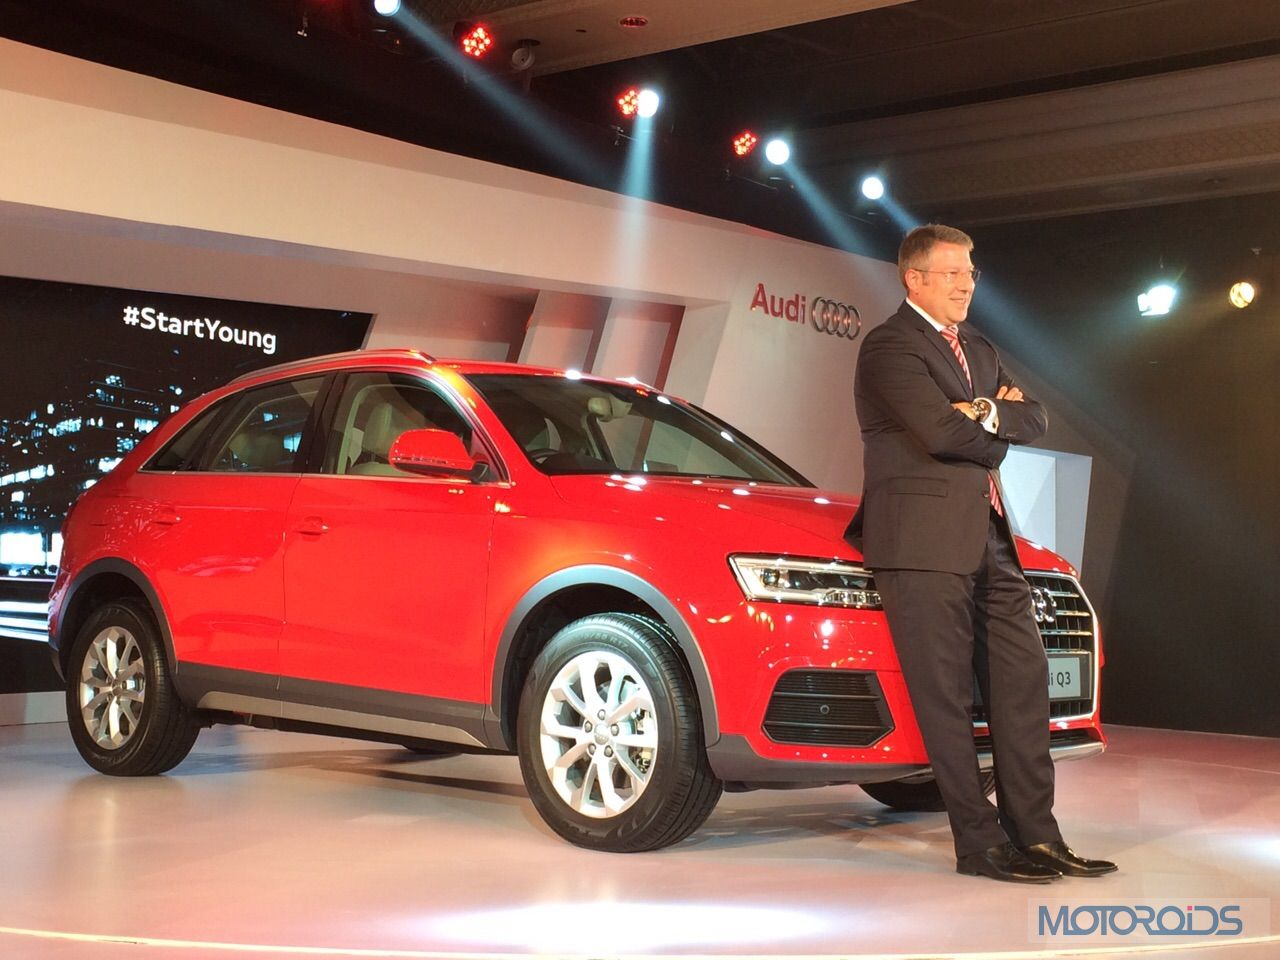 Live From the launch: 2015 Audi Q3 Facelift Priced Rs 28.99 lakh – images, and all the details